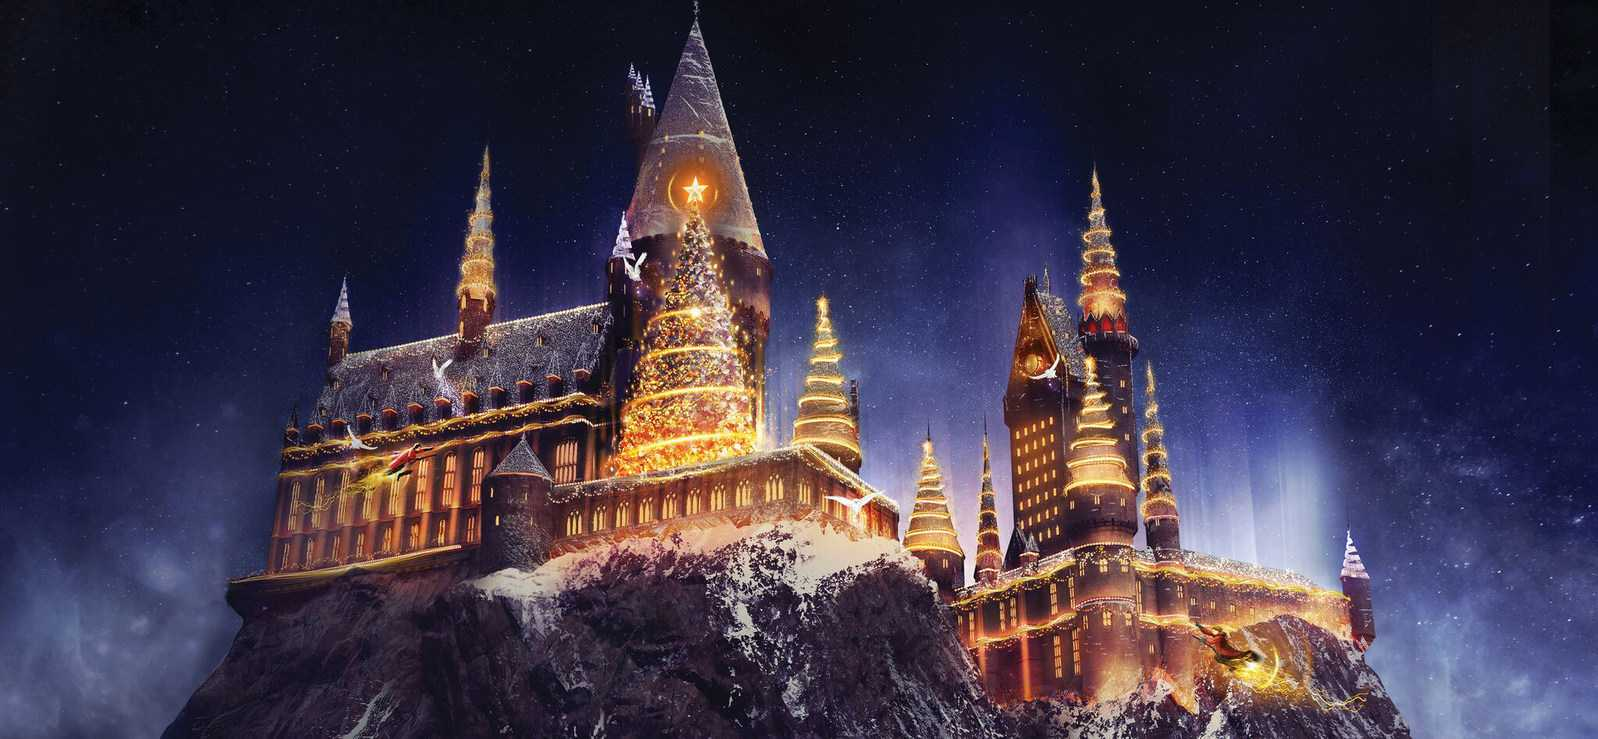 A Harry Potter Christmas: Universal Studios Hollywood To Have Festive Light Show At Hogwarts | Harry Potter Christmas